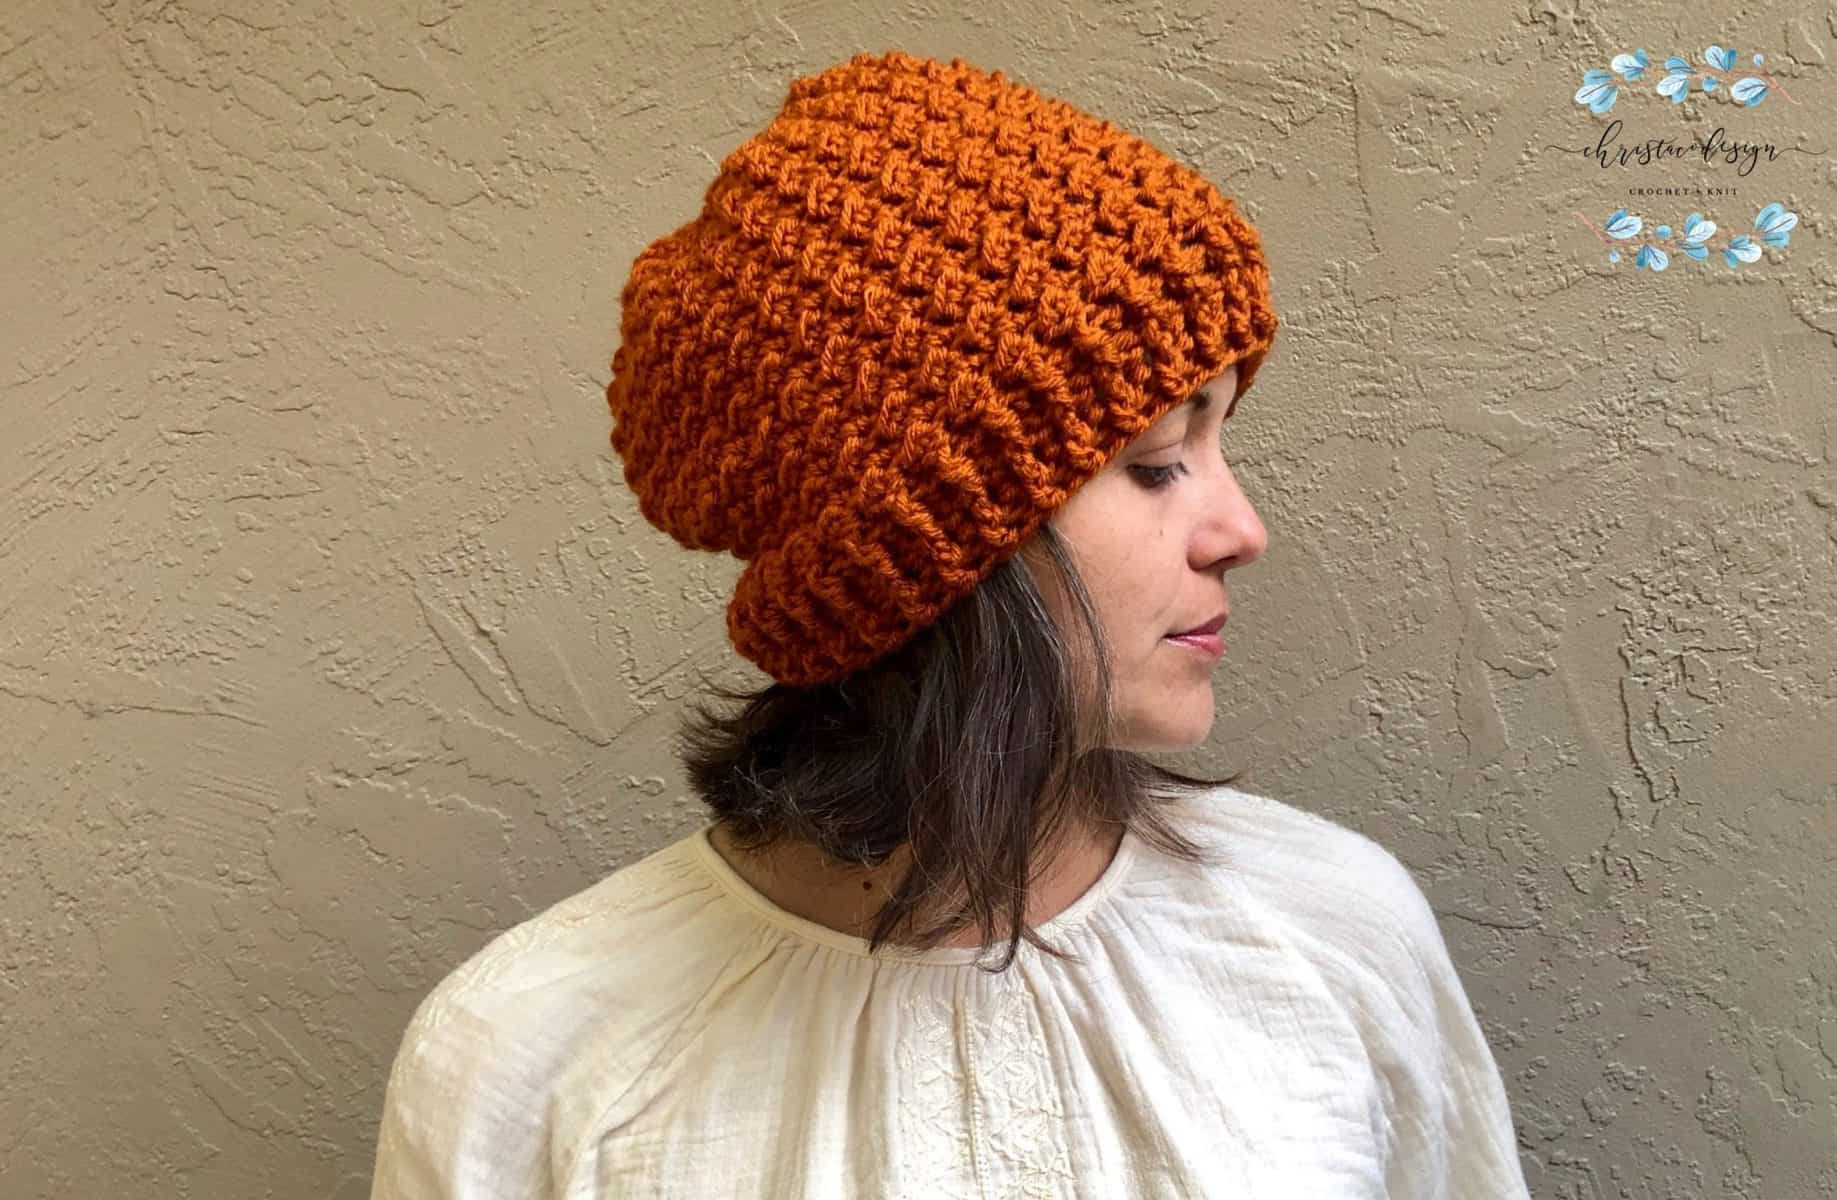 picture of woman in crochet textured hat rust colored